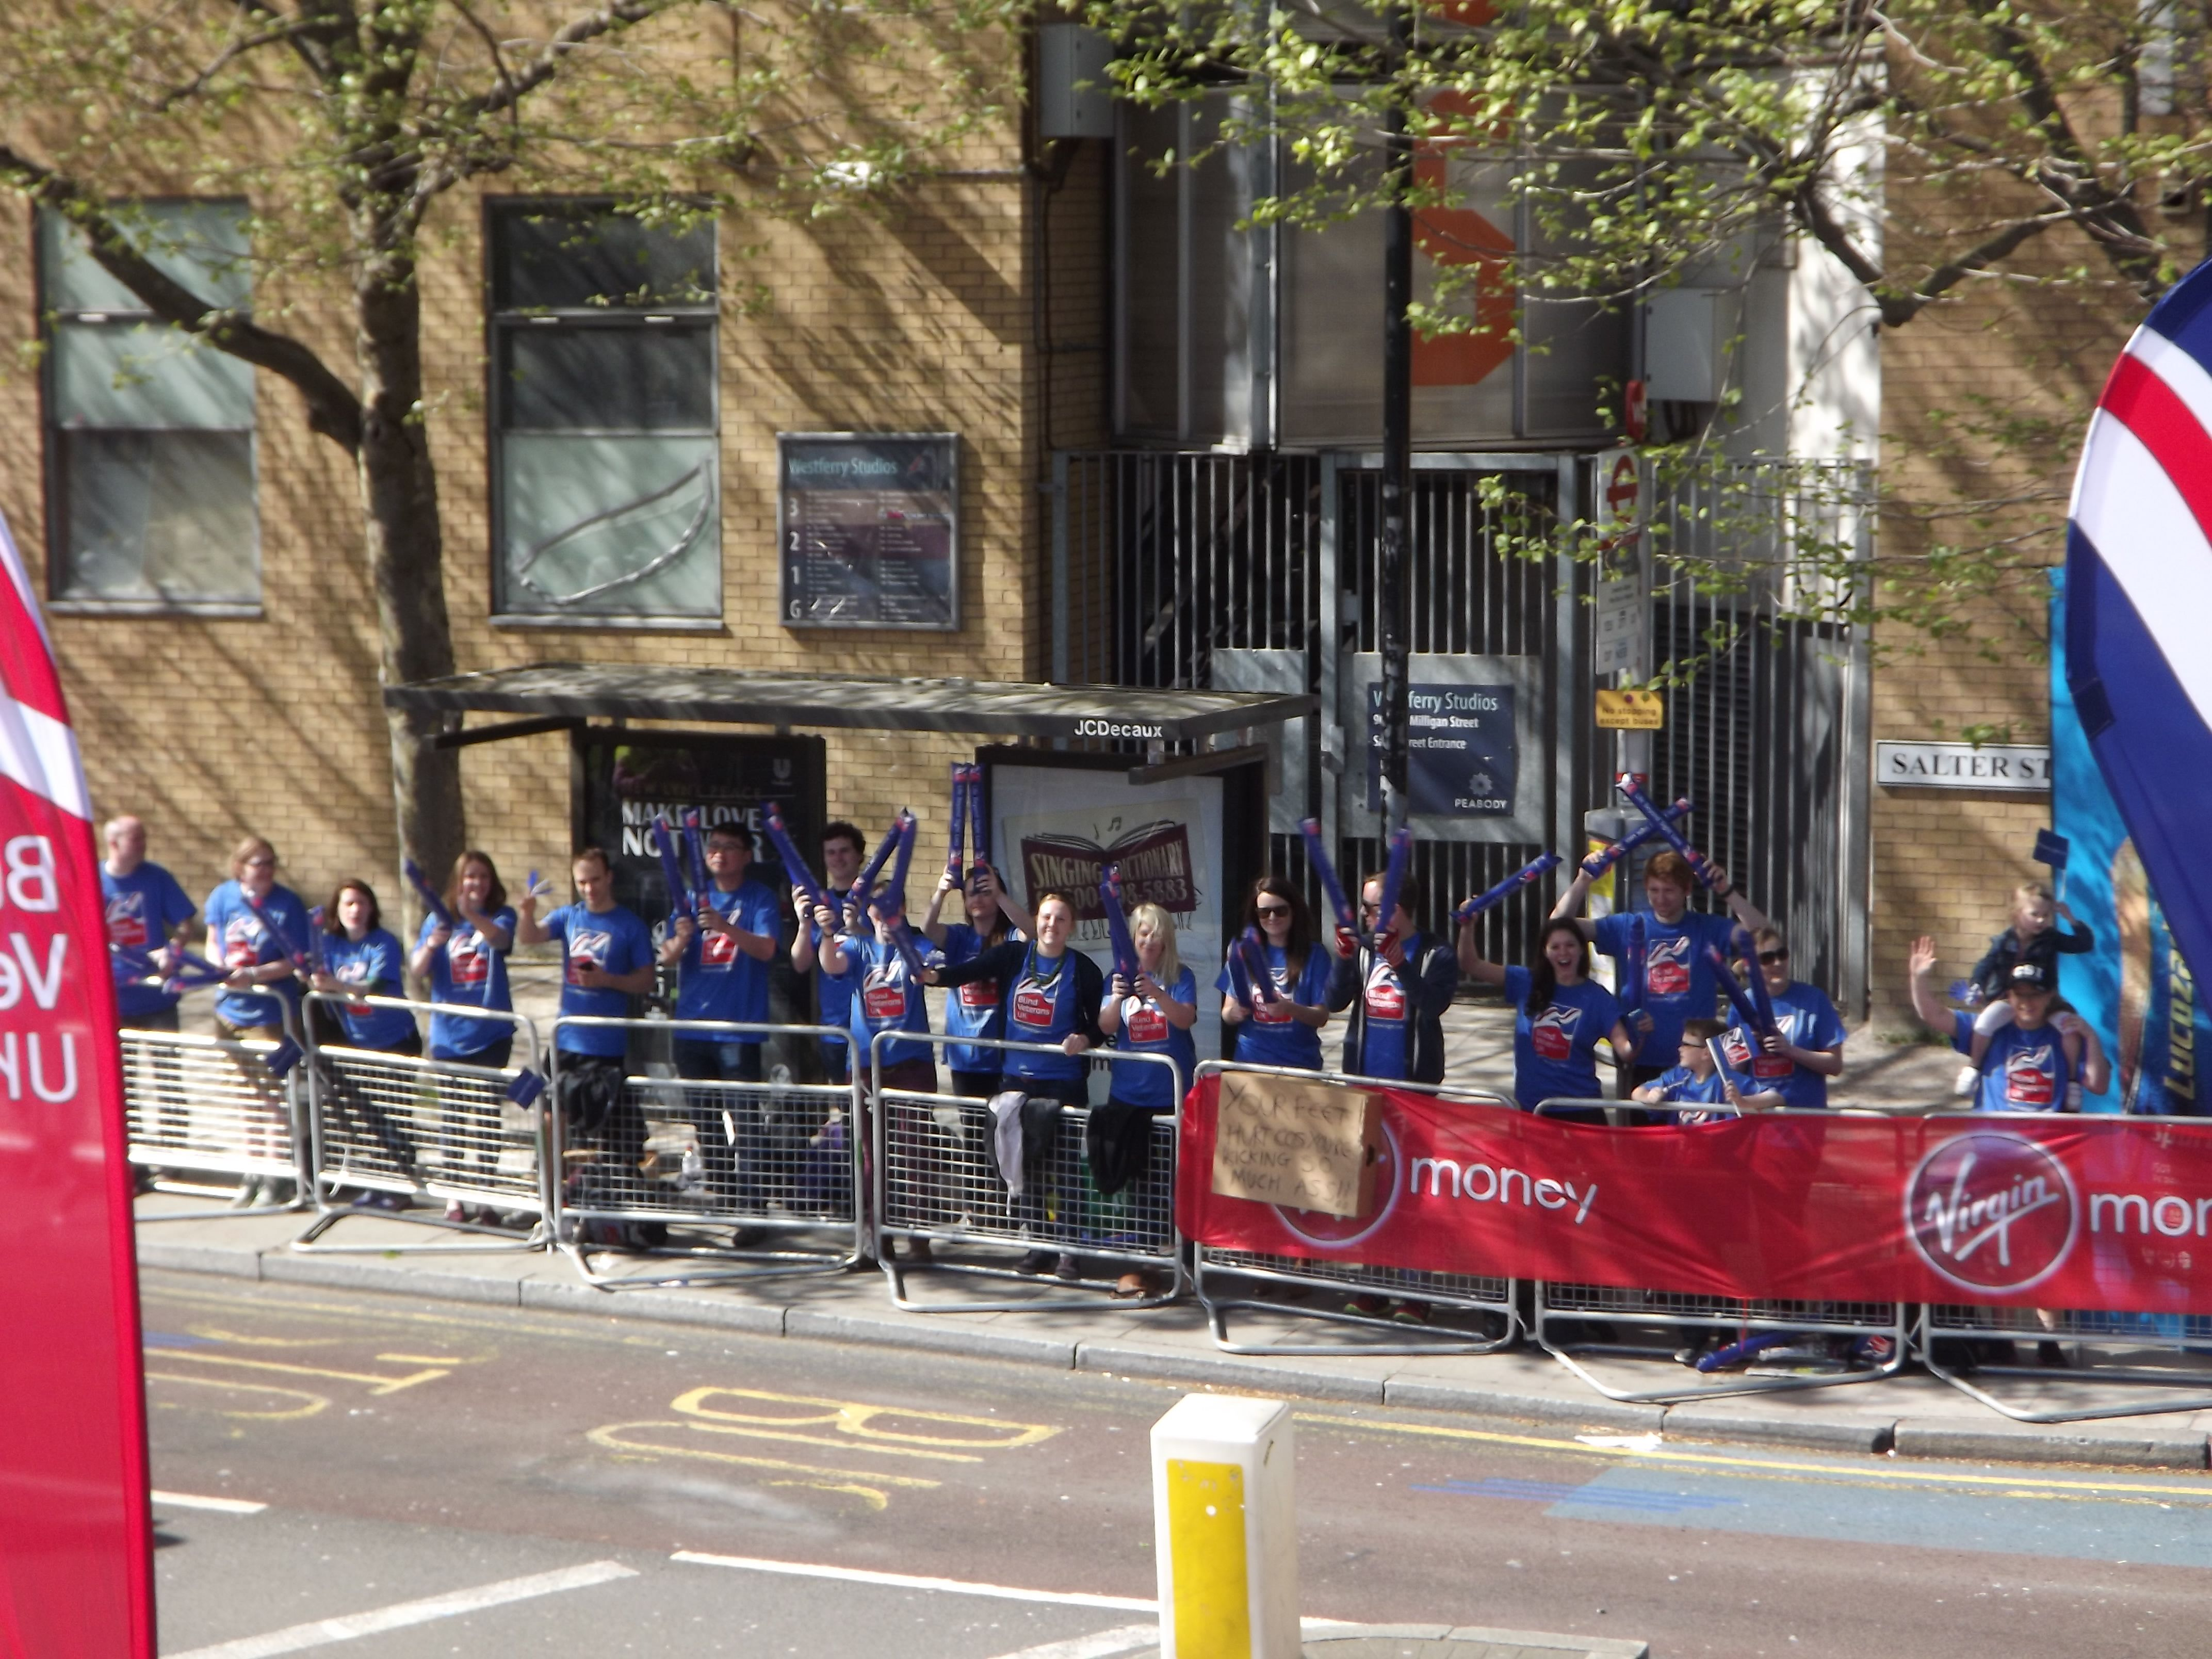 Blind Veterans UK's cheering squad ready to give the runners lot's of encouragement! Thank you to all of you for your amazing support and a big thank you to our volunteers who came to support blind veterans every step of the way. #LondonMarathon  Image credited to Ian Dunn Design